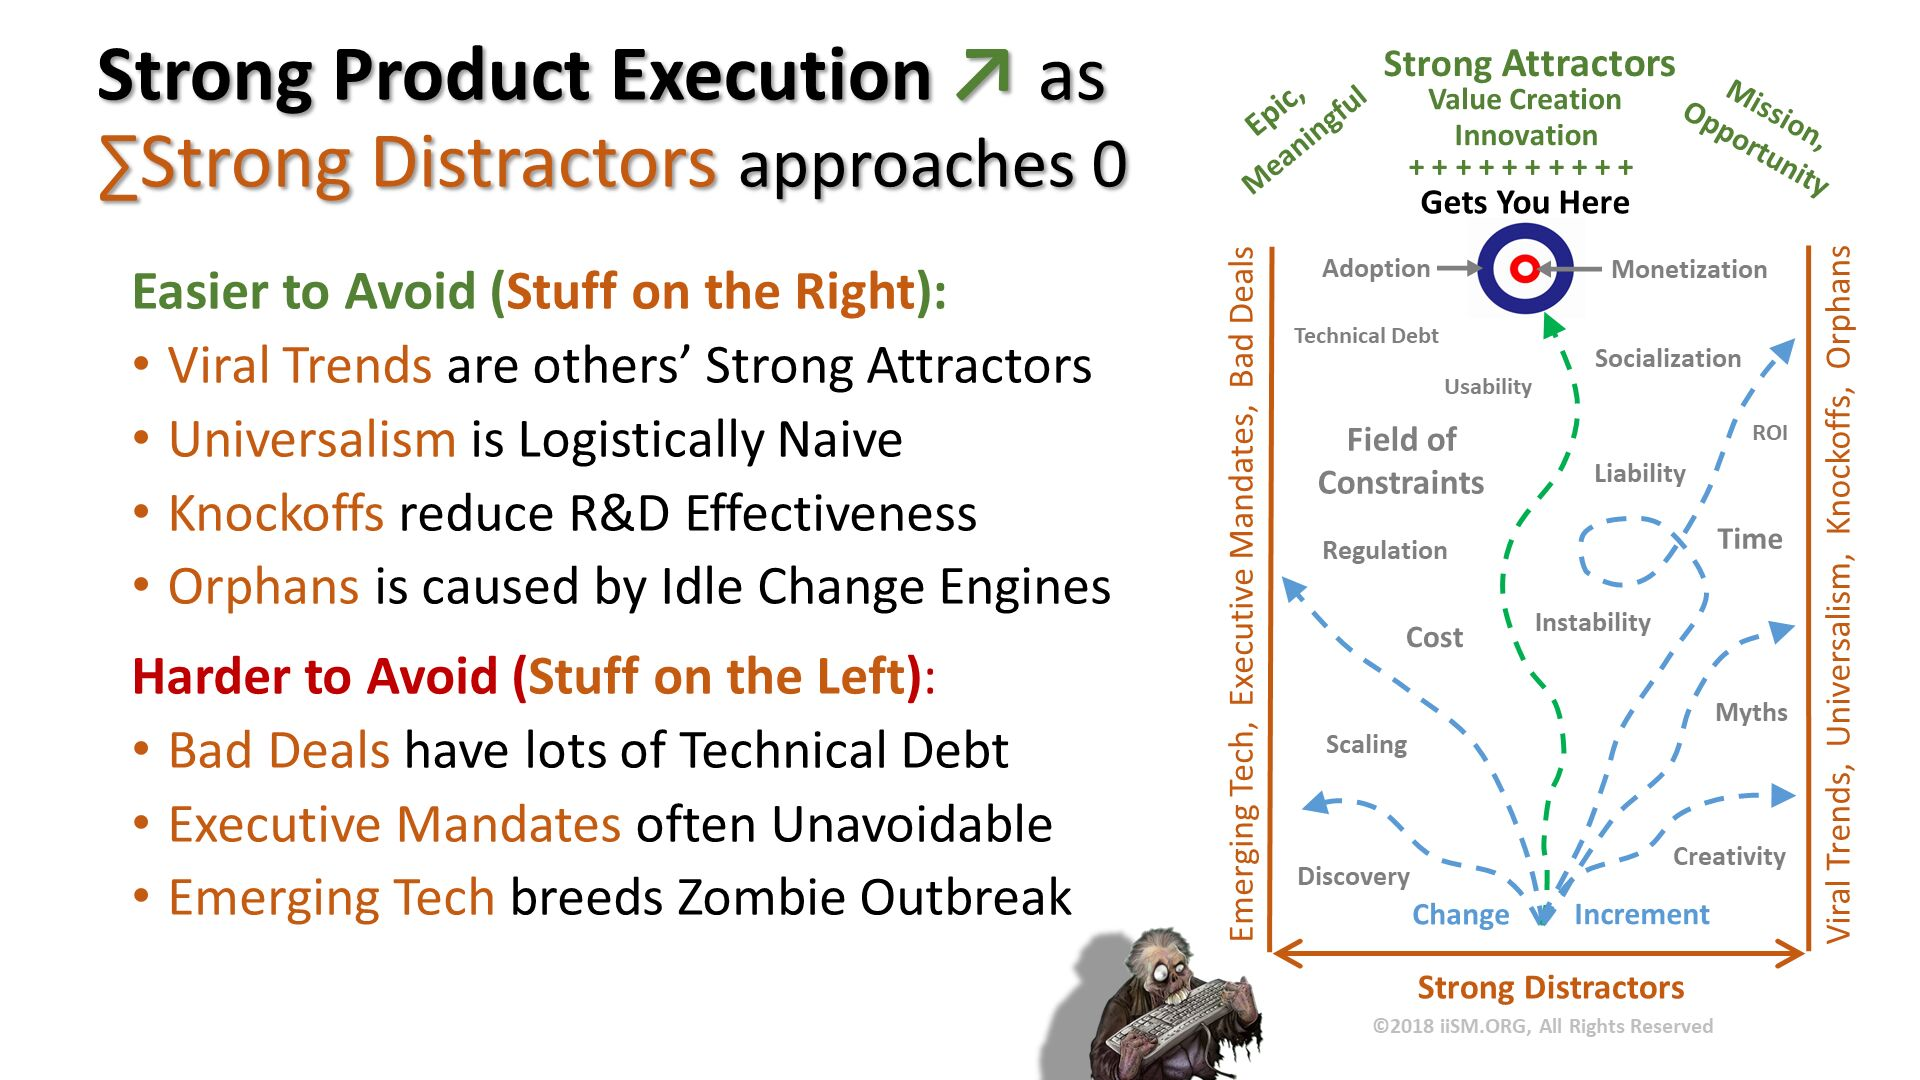 Strong Product Execution ↗ as∑Strong Distractors approaches 0. Easier to Avoid (Stuff on the Right): Viral Trends are others' Strong Attractors Universalism is Logistically Naive Knockoffs reduce R&D Effectiveness Orphans is caused by Idle Change Engines Harder to Avoid (Stuff on the Left): Bad Deals have lots of Technical Debt Executive Mandates often Unavoidable Emerging Tech breeds Zombie Outbreak .